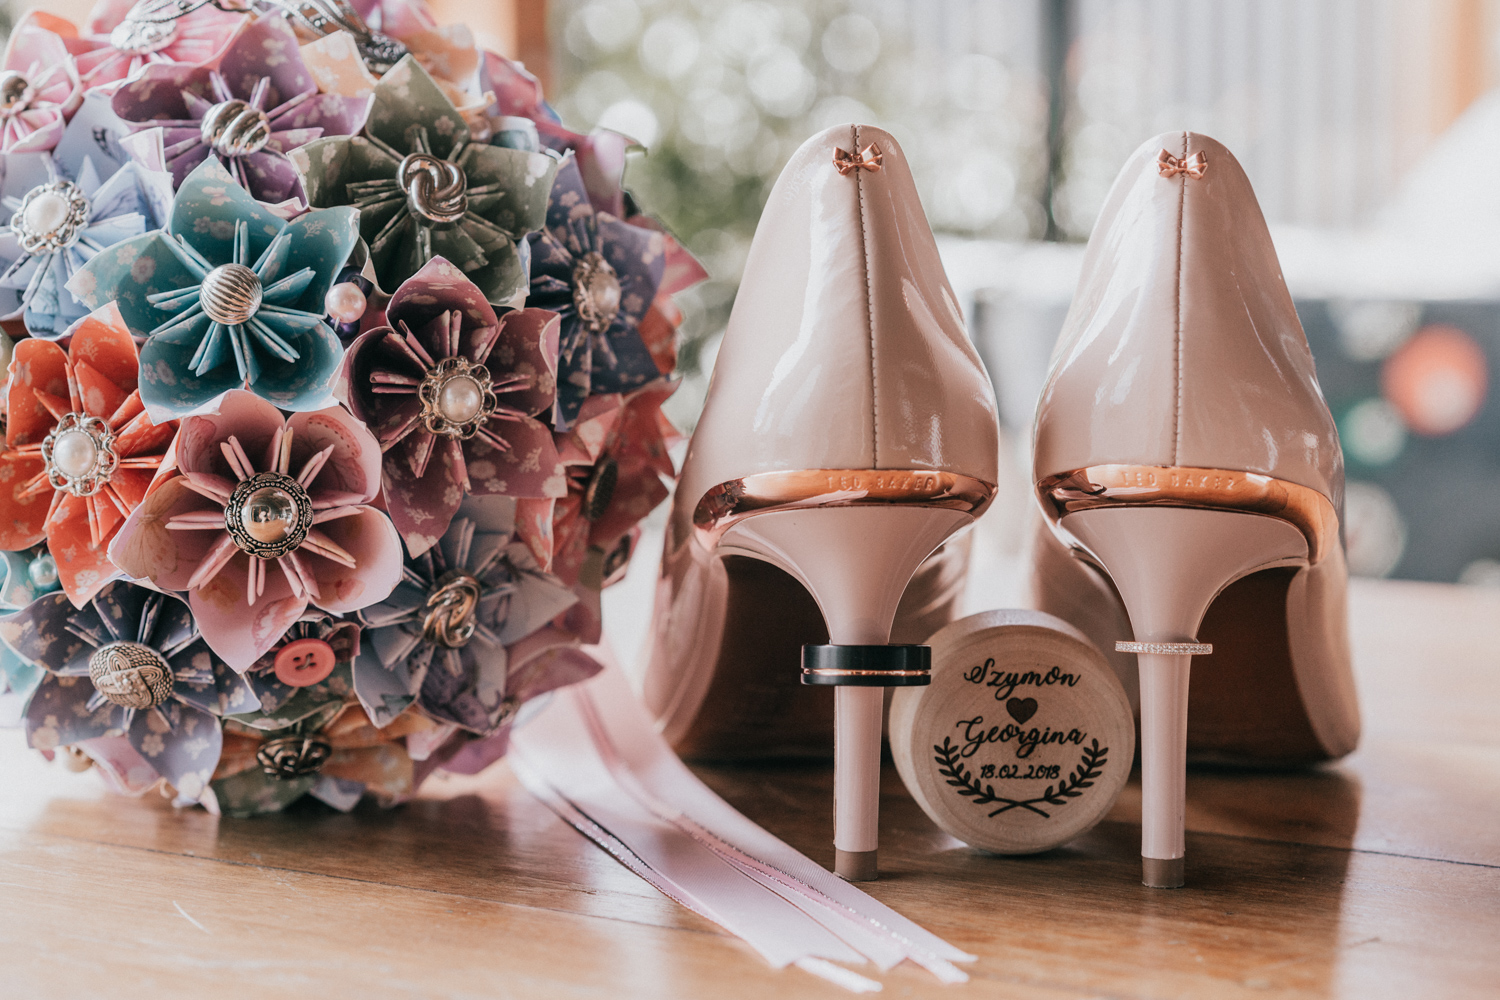 beautiful wedding photo of Ted Baker bridal shoes and bouquet and wedding rings in a barn wedding table